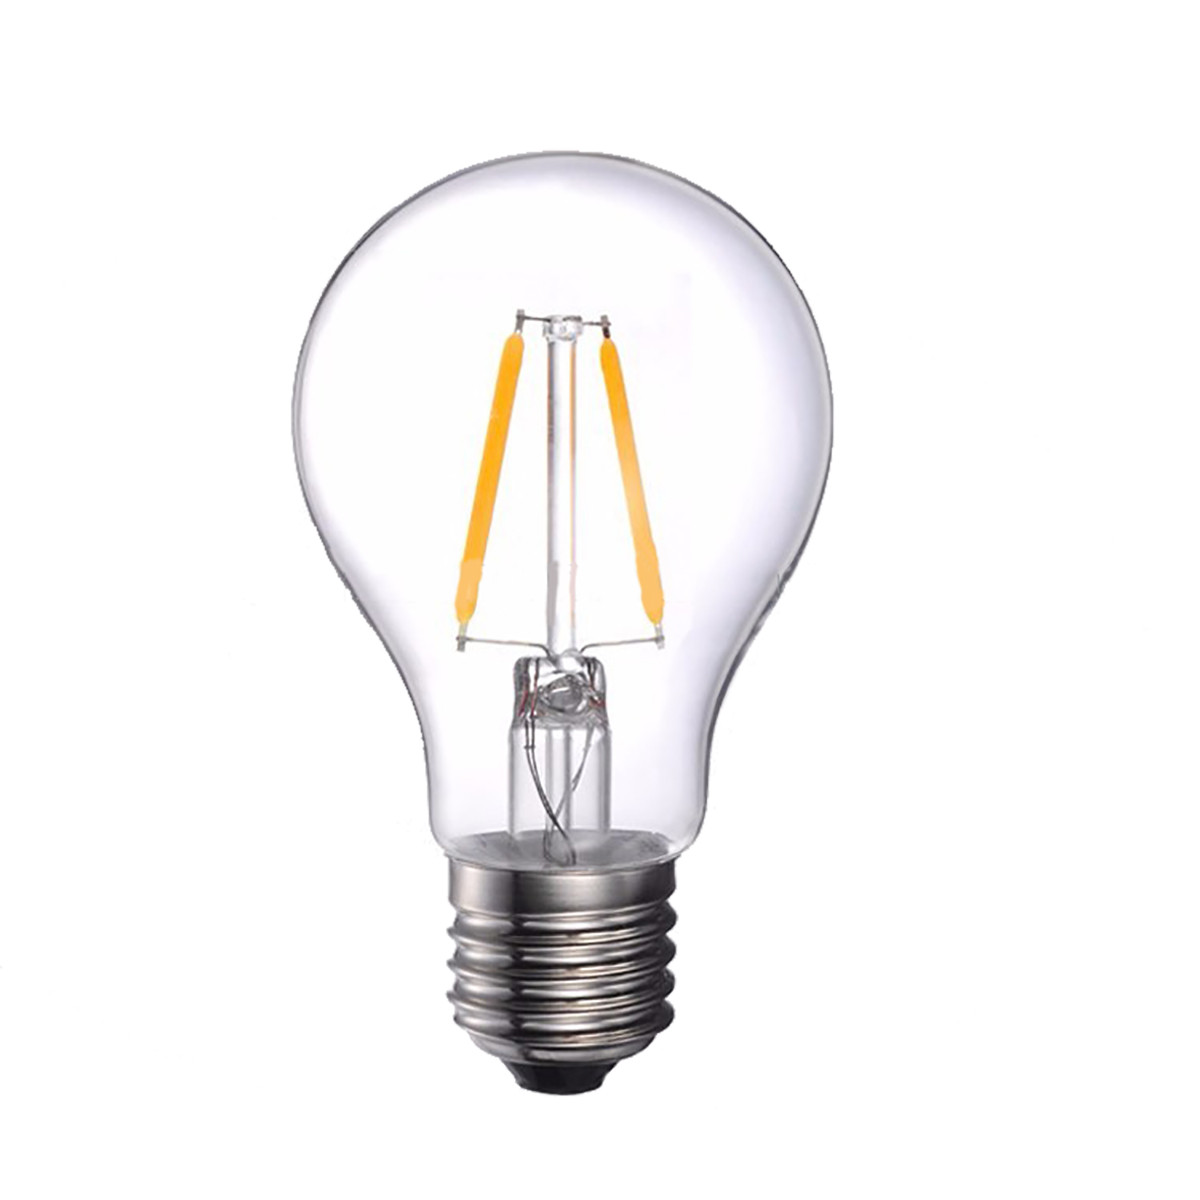 2W Filament LED Globe Light Bulb Light A60 Chandelier Bulb with E26 Base 20W Equivalent Halogen Replacement